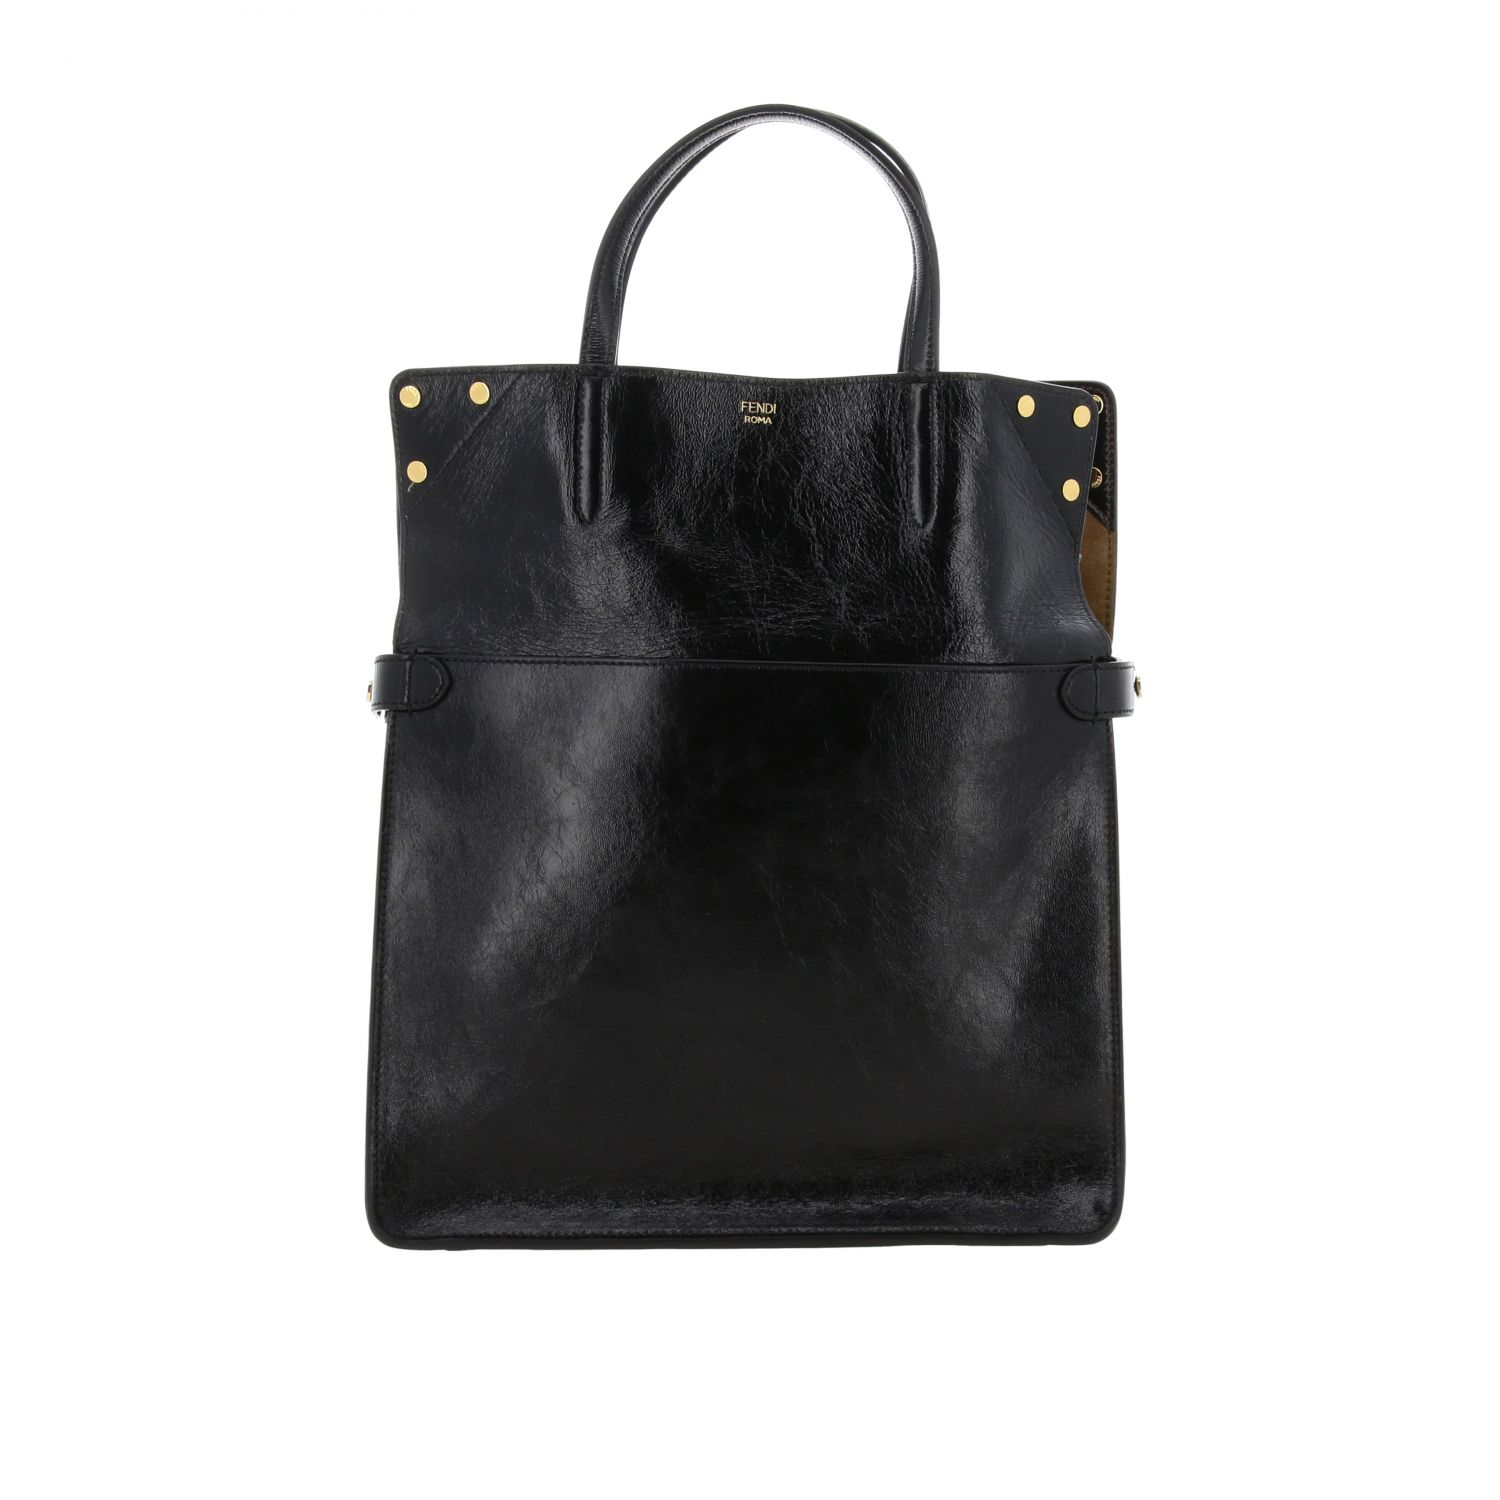 Shoulder bag women Fendi black 3